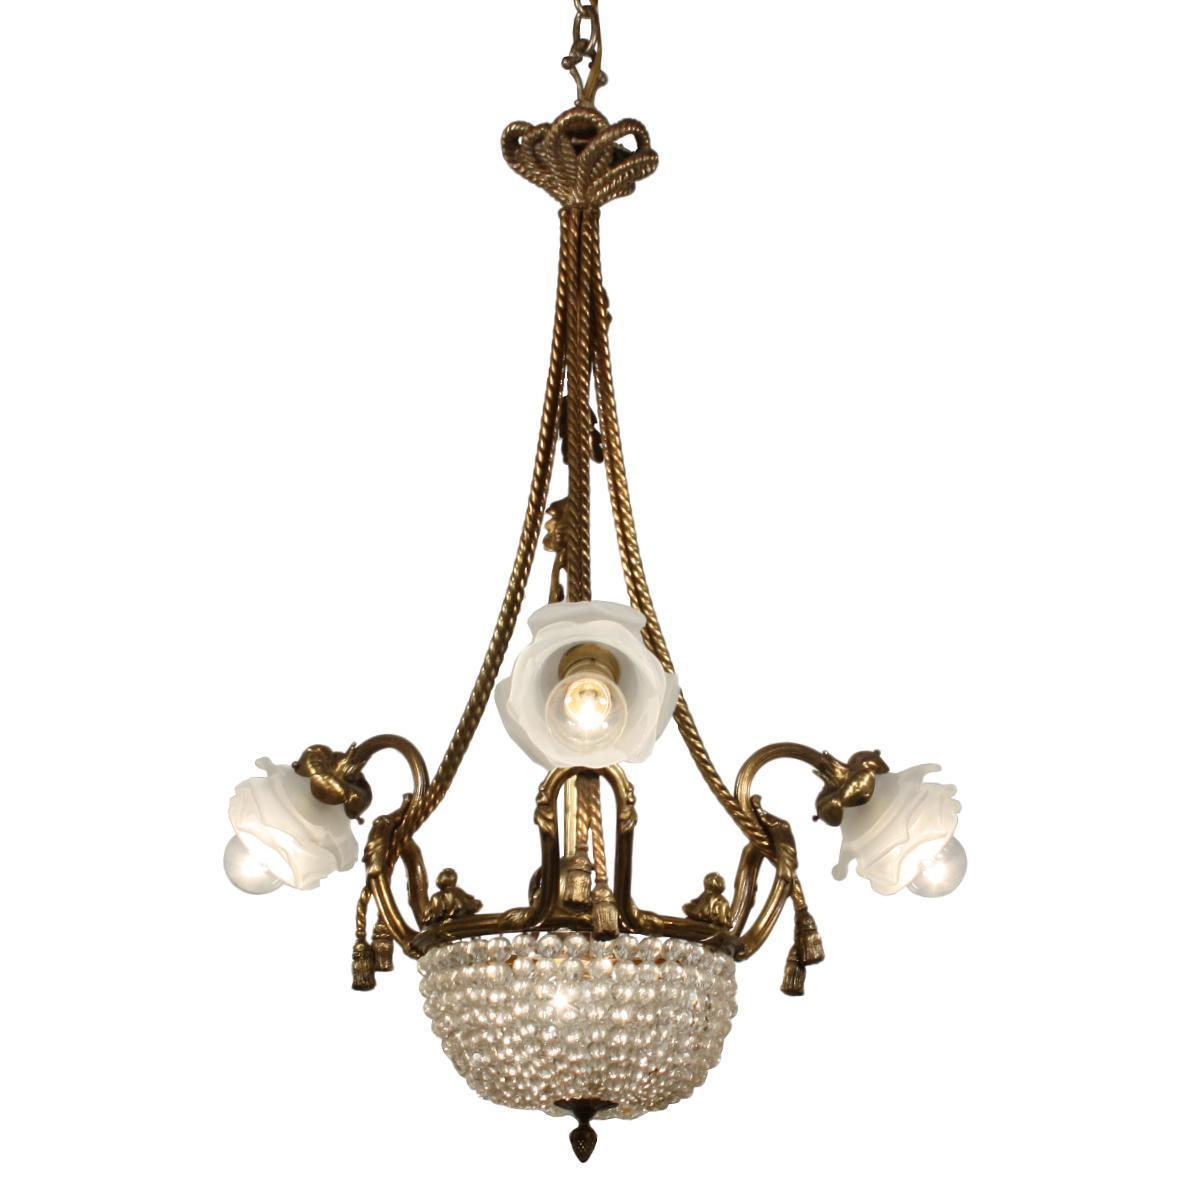 Fabulous Antique Gilded Bronze Chandelier with Prisms, From France